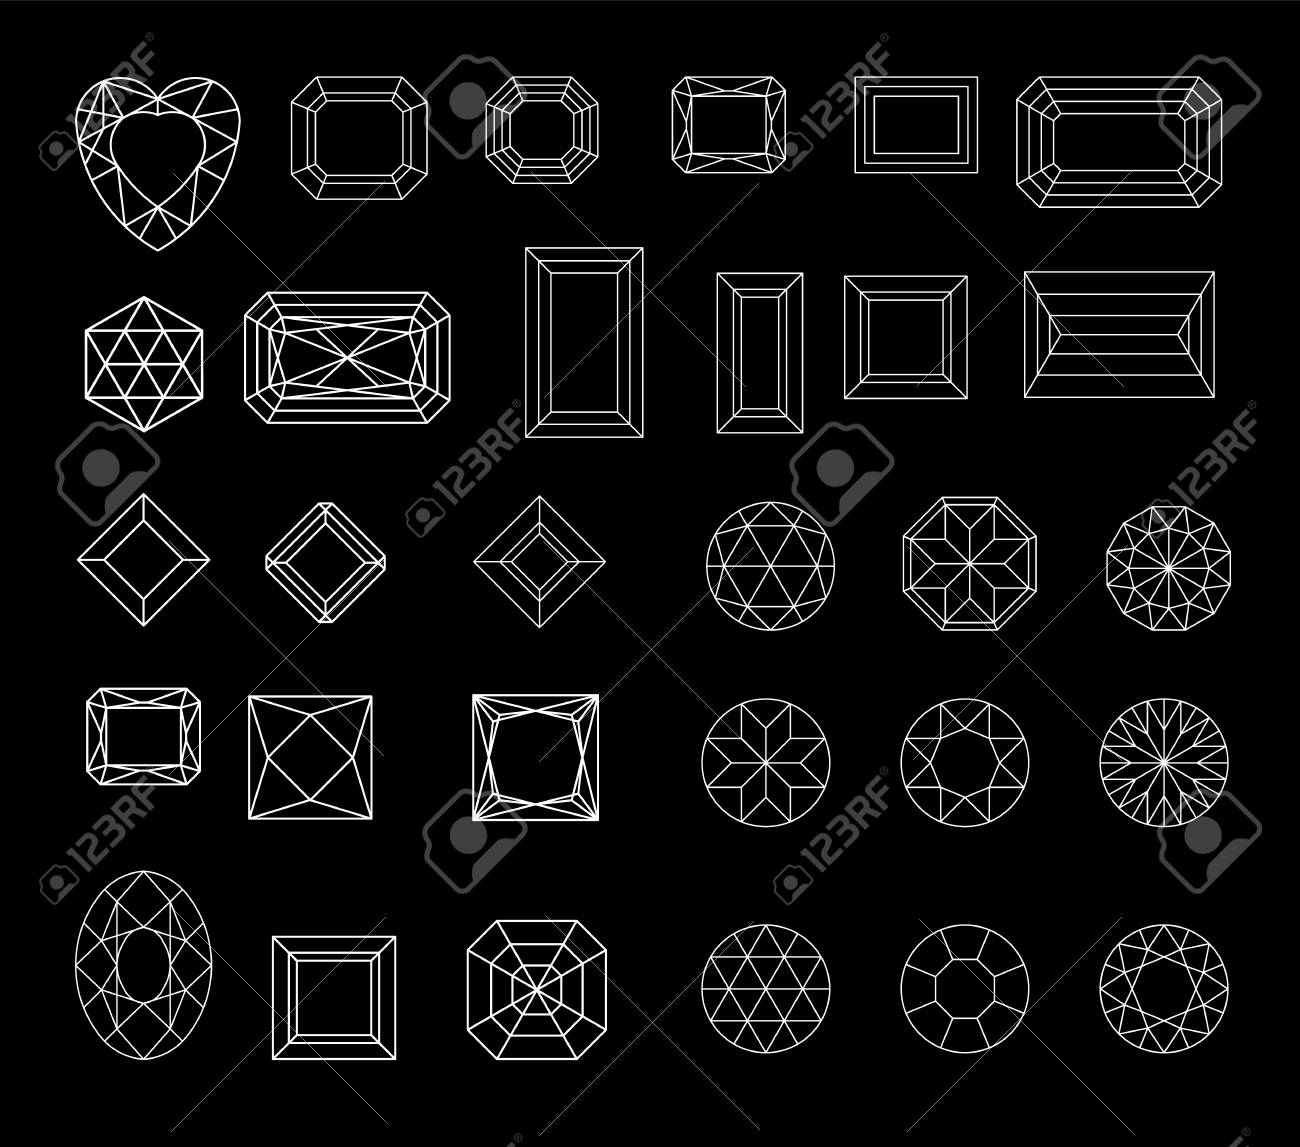 Collection shapes of diamond against black background - 106207932